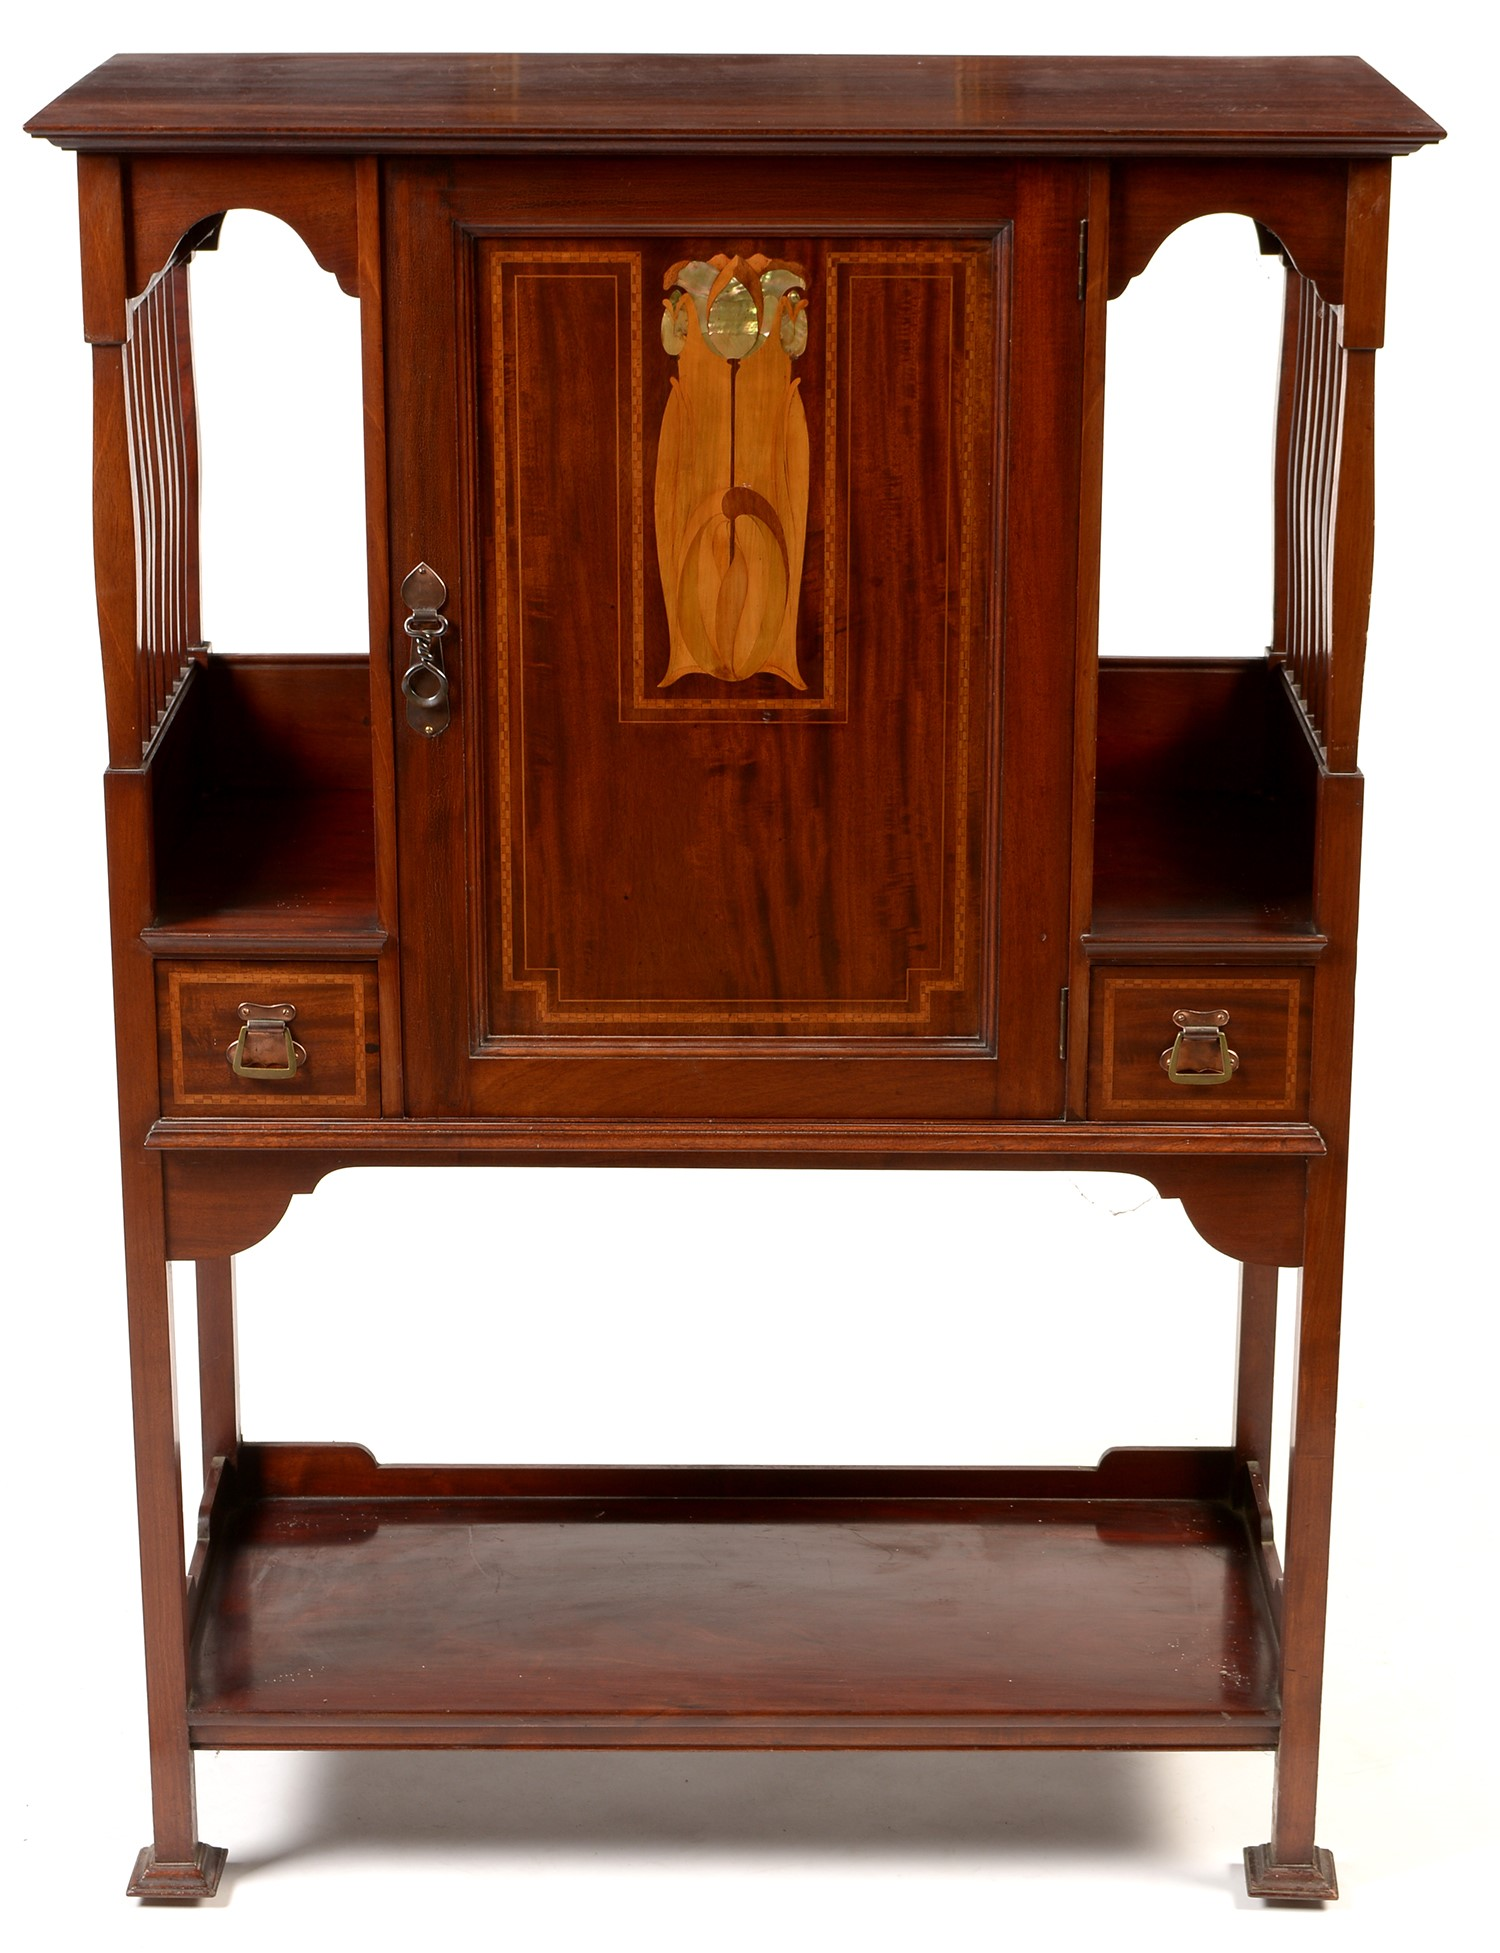 Attributed to Shapland & Petter: an Art Nouveau inlaid mahogany music cabinet.